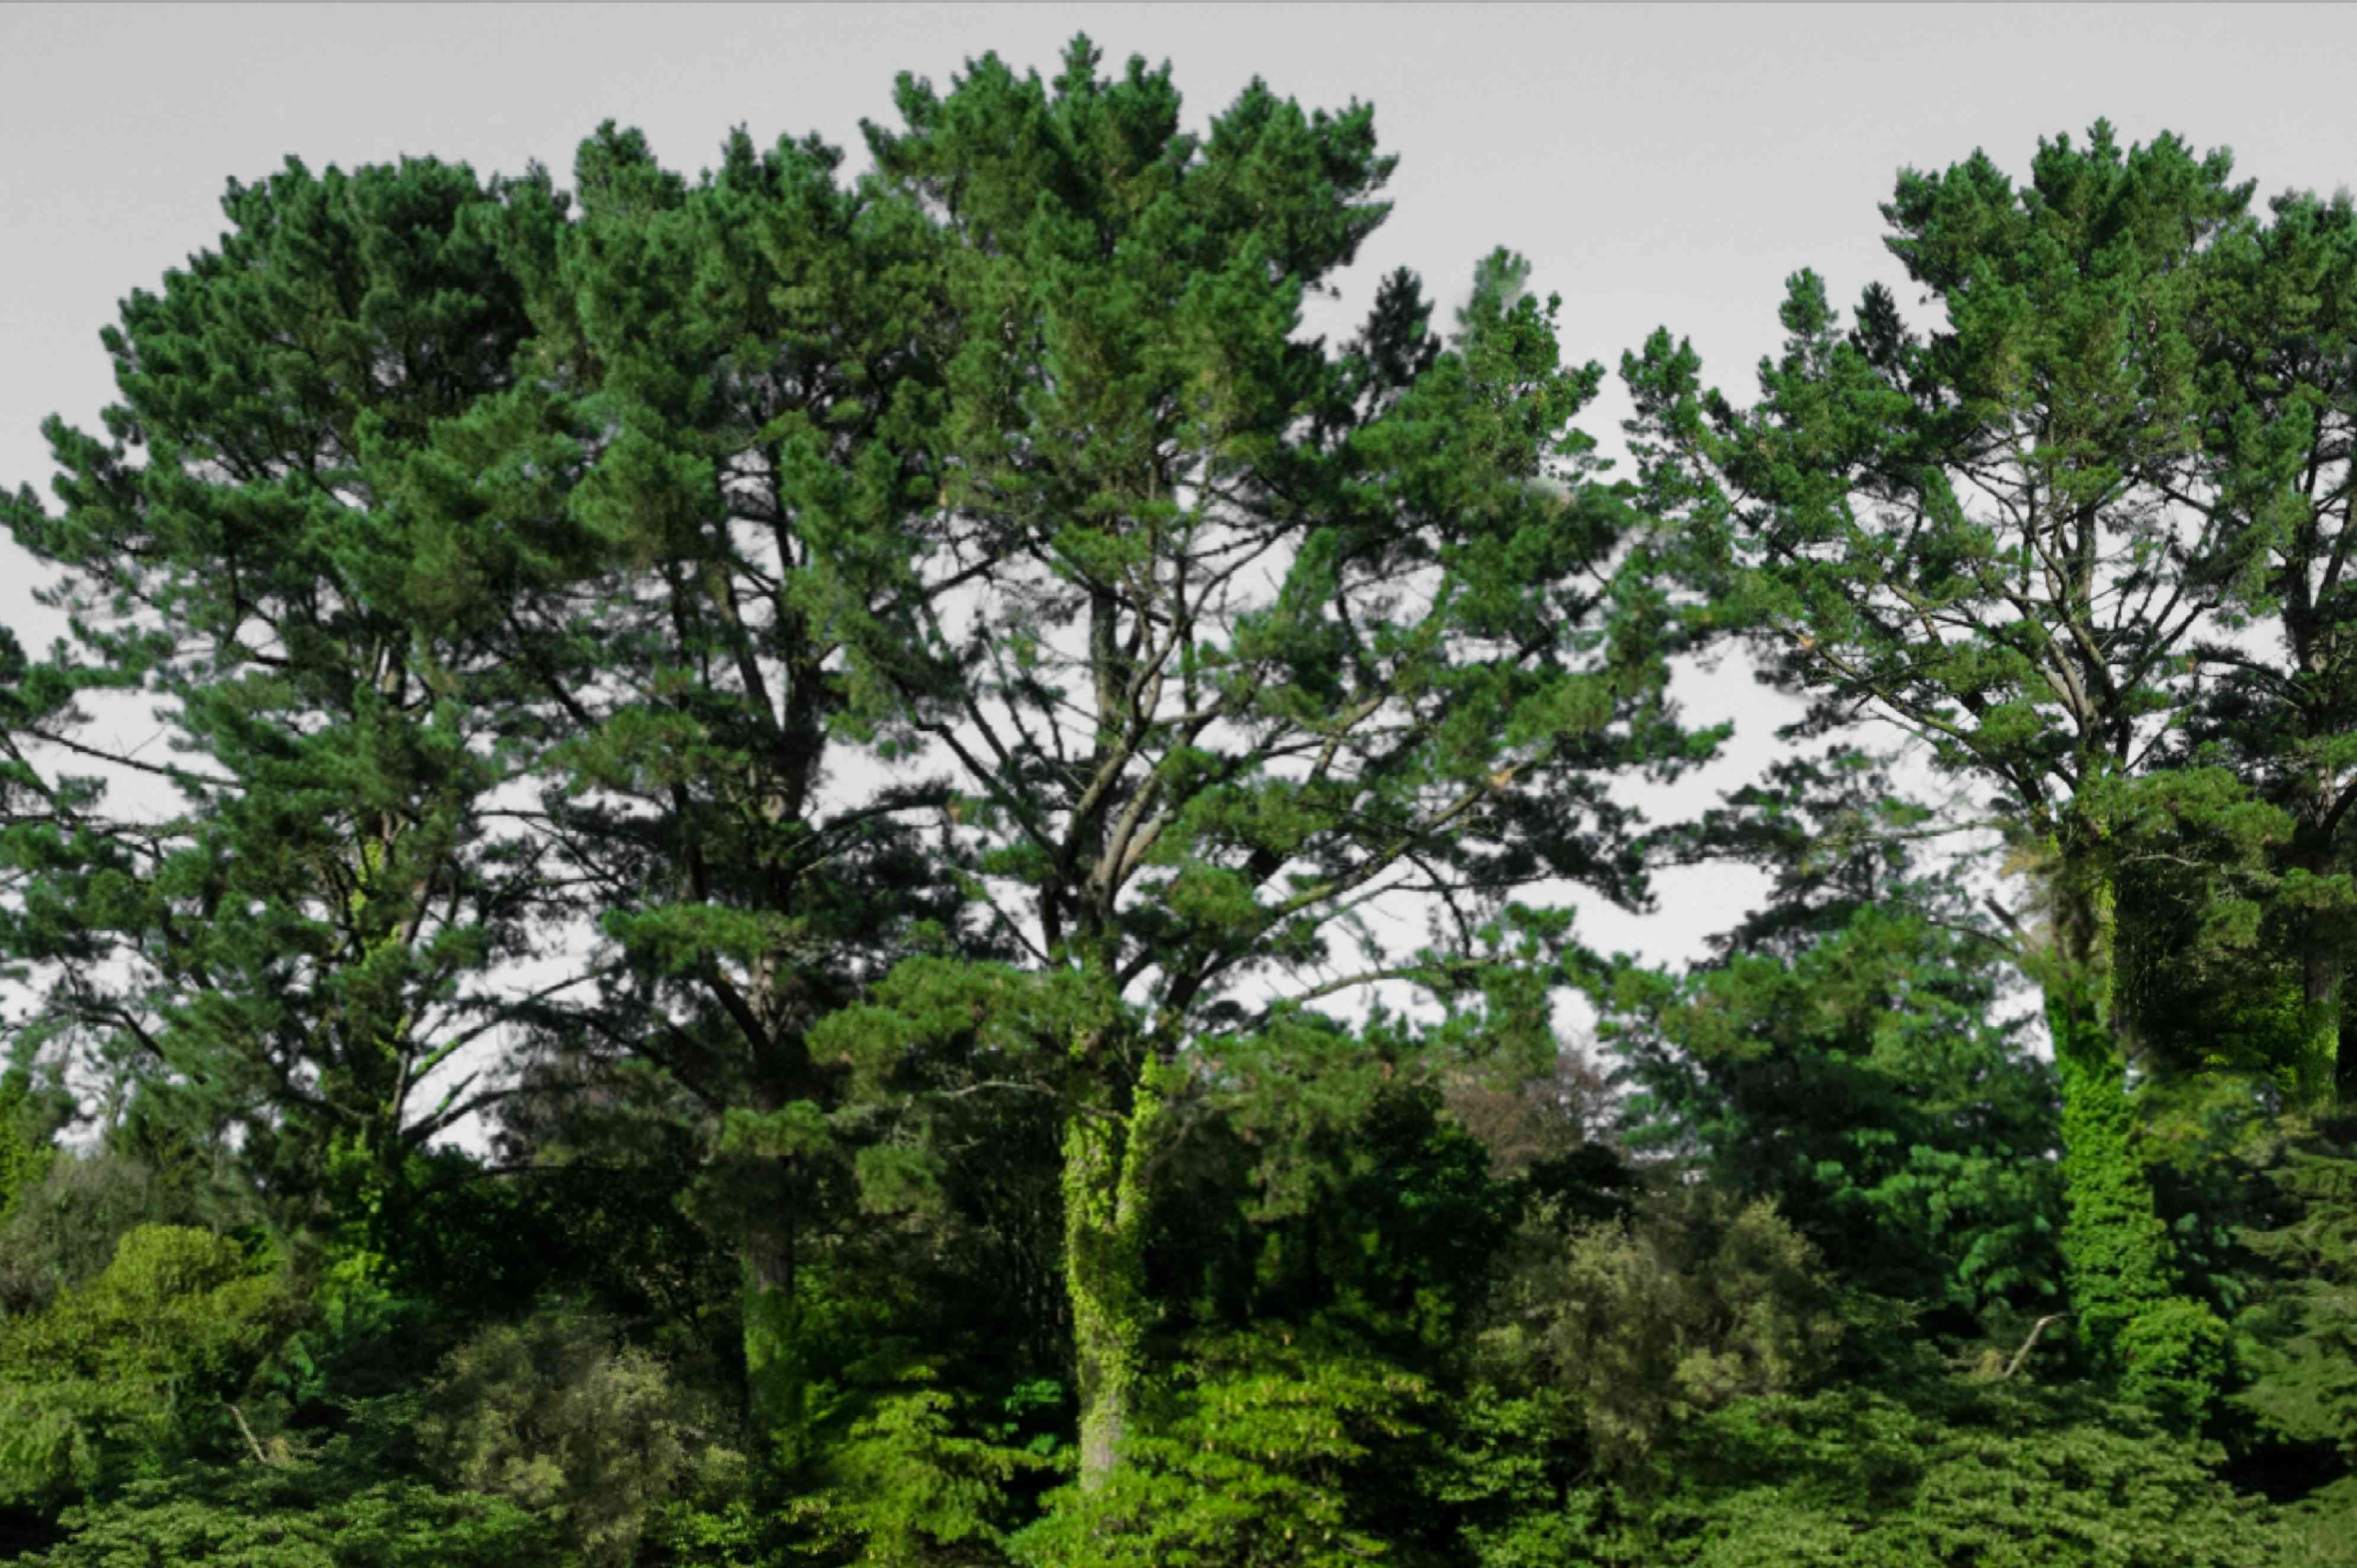 Monterey pine trees with tall leaf covered trunks and sprawling branches